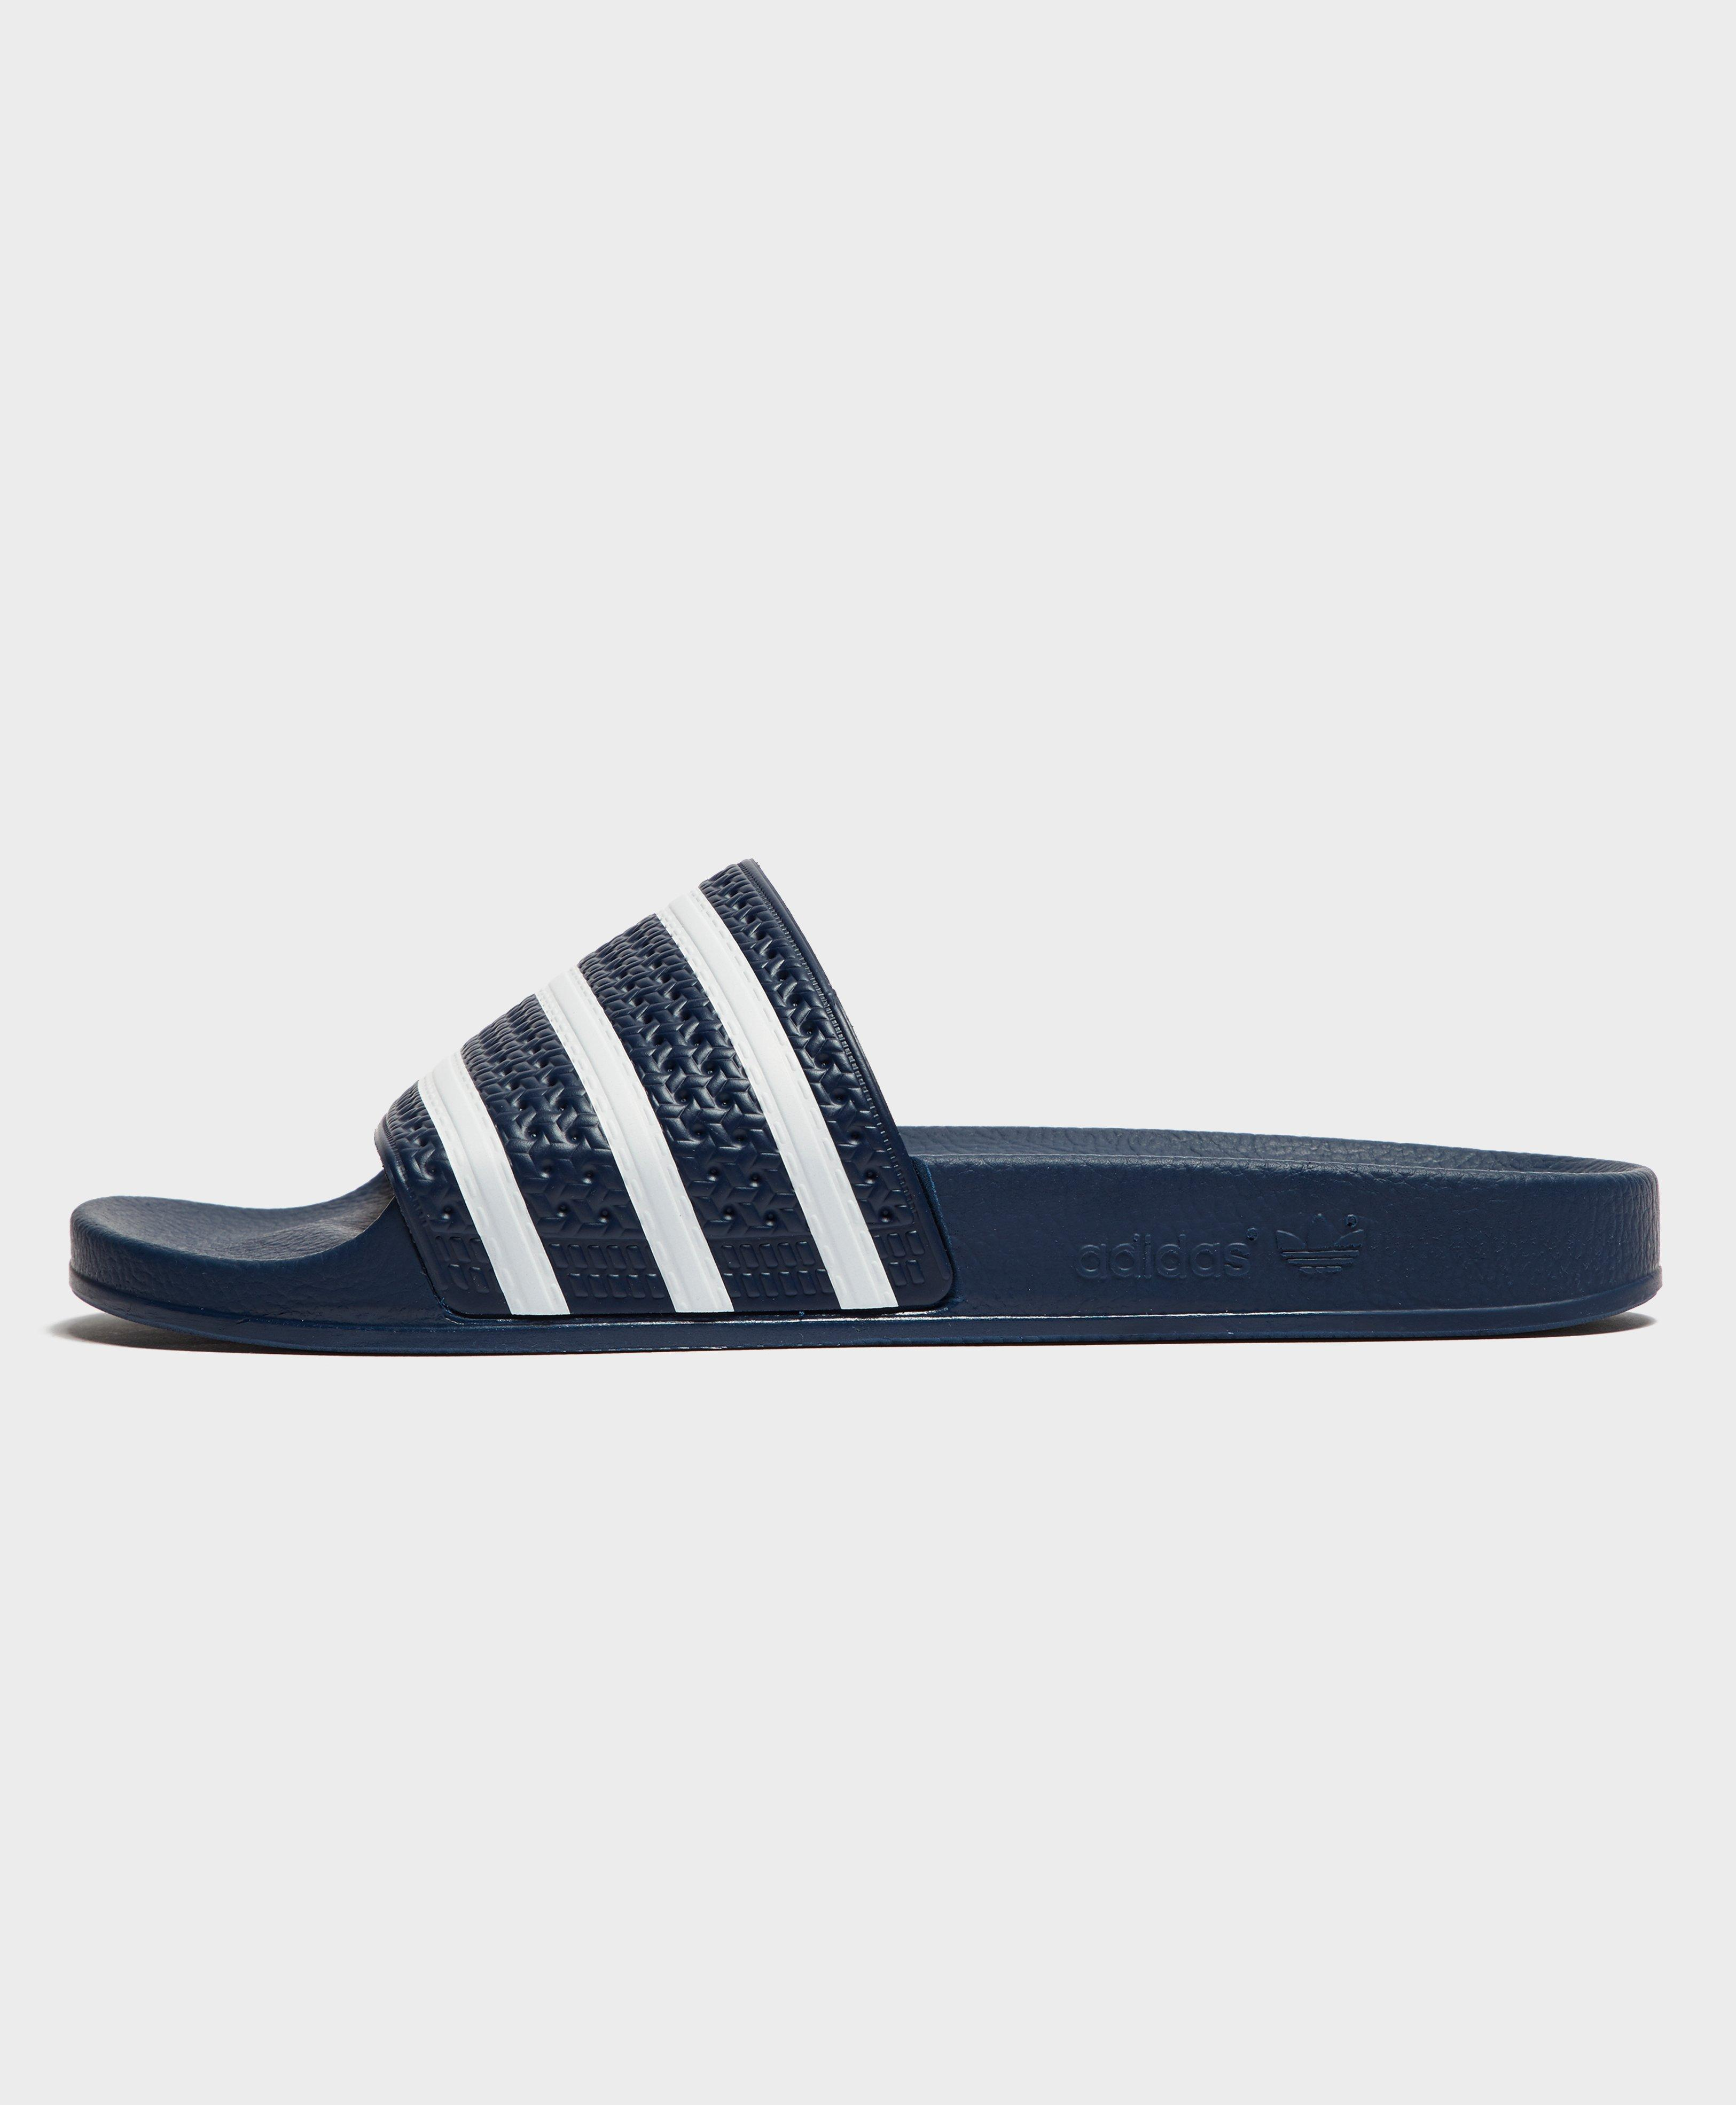 4c4f989f00e471 adidas Originals Adilette Slides in Blue for Men - Lyst